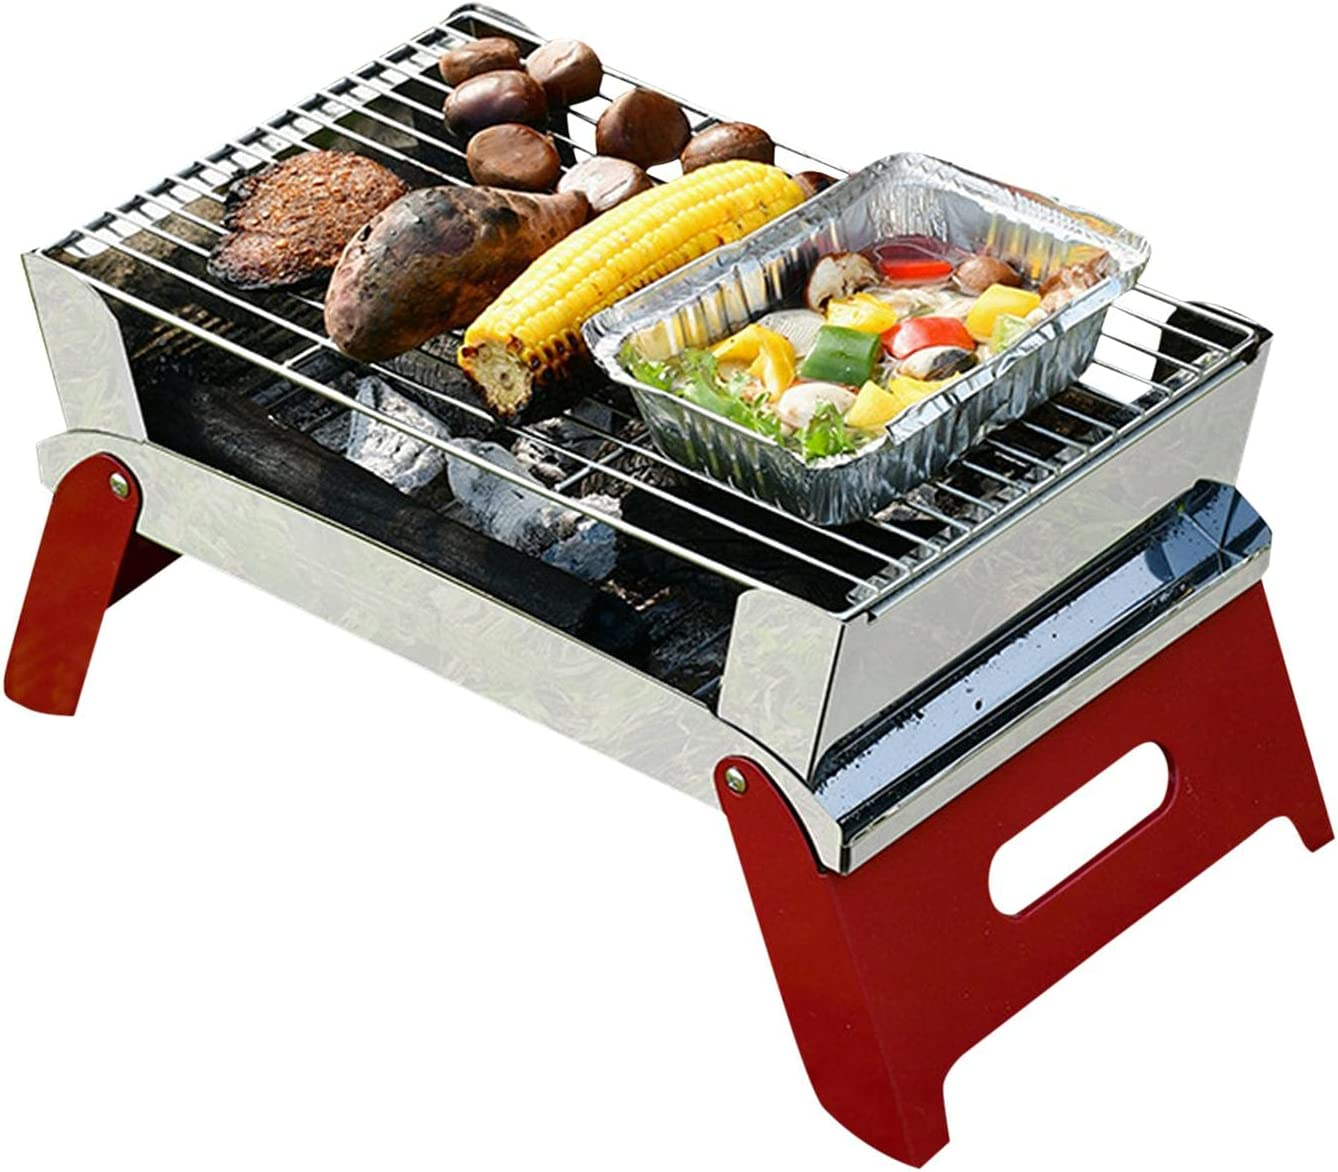 AEZON Stainless Steel BBQ Foldable Low price Camping Grill New life Convenien